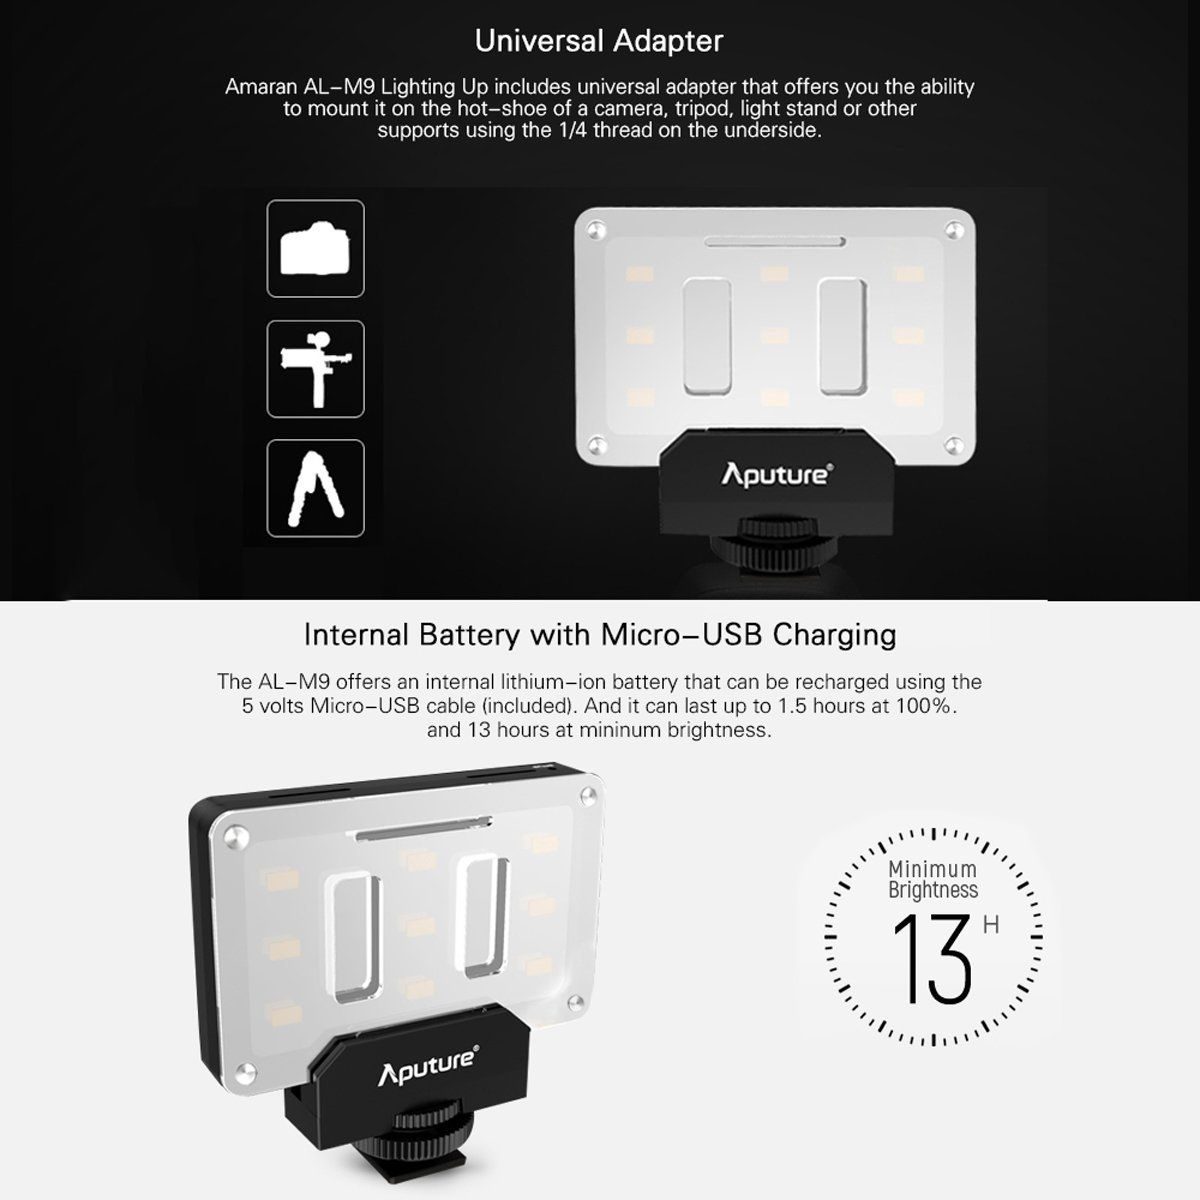 Amaran Al M9 Pocket Sized Daylight Balanced Led Light Tiyana Incorporation Official Aputure India Distributor Sony Mobile Phones Phone Camera Lens New Mobile Phones